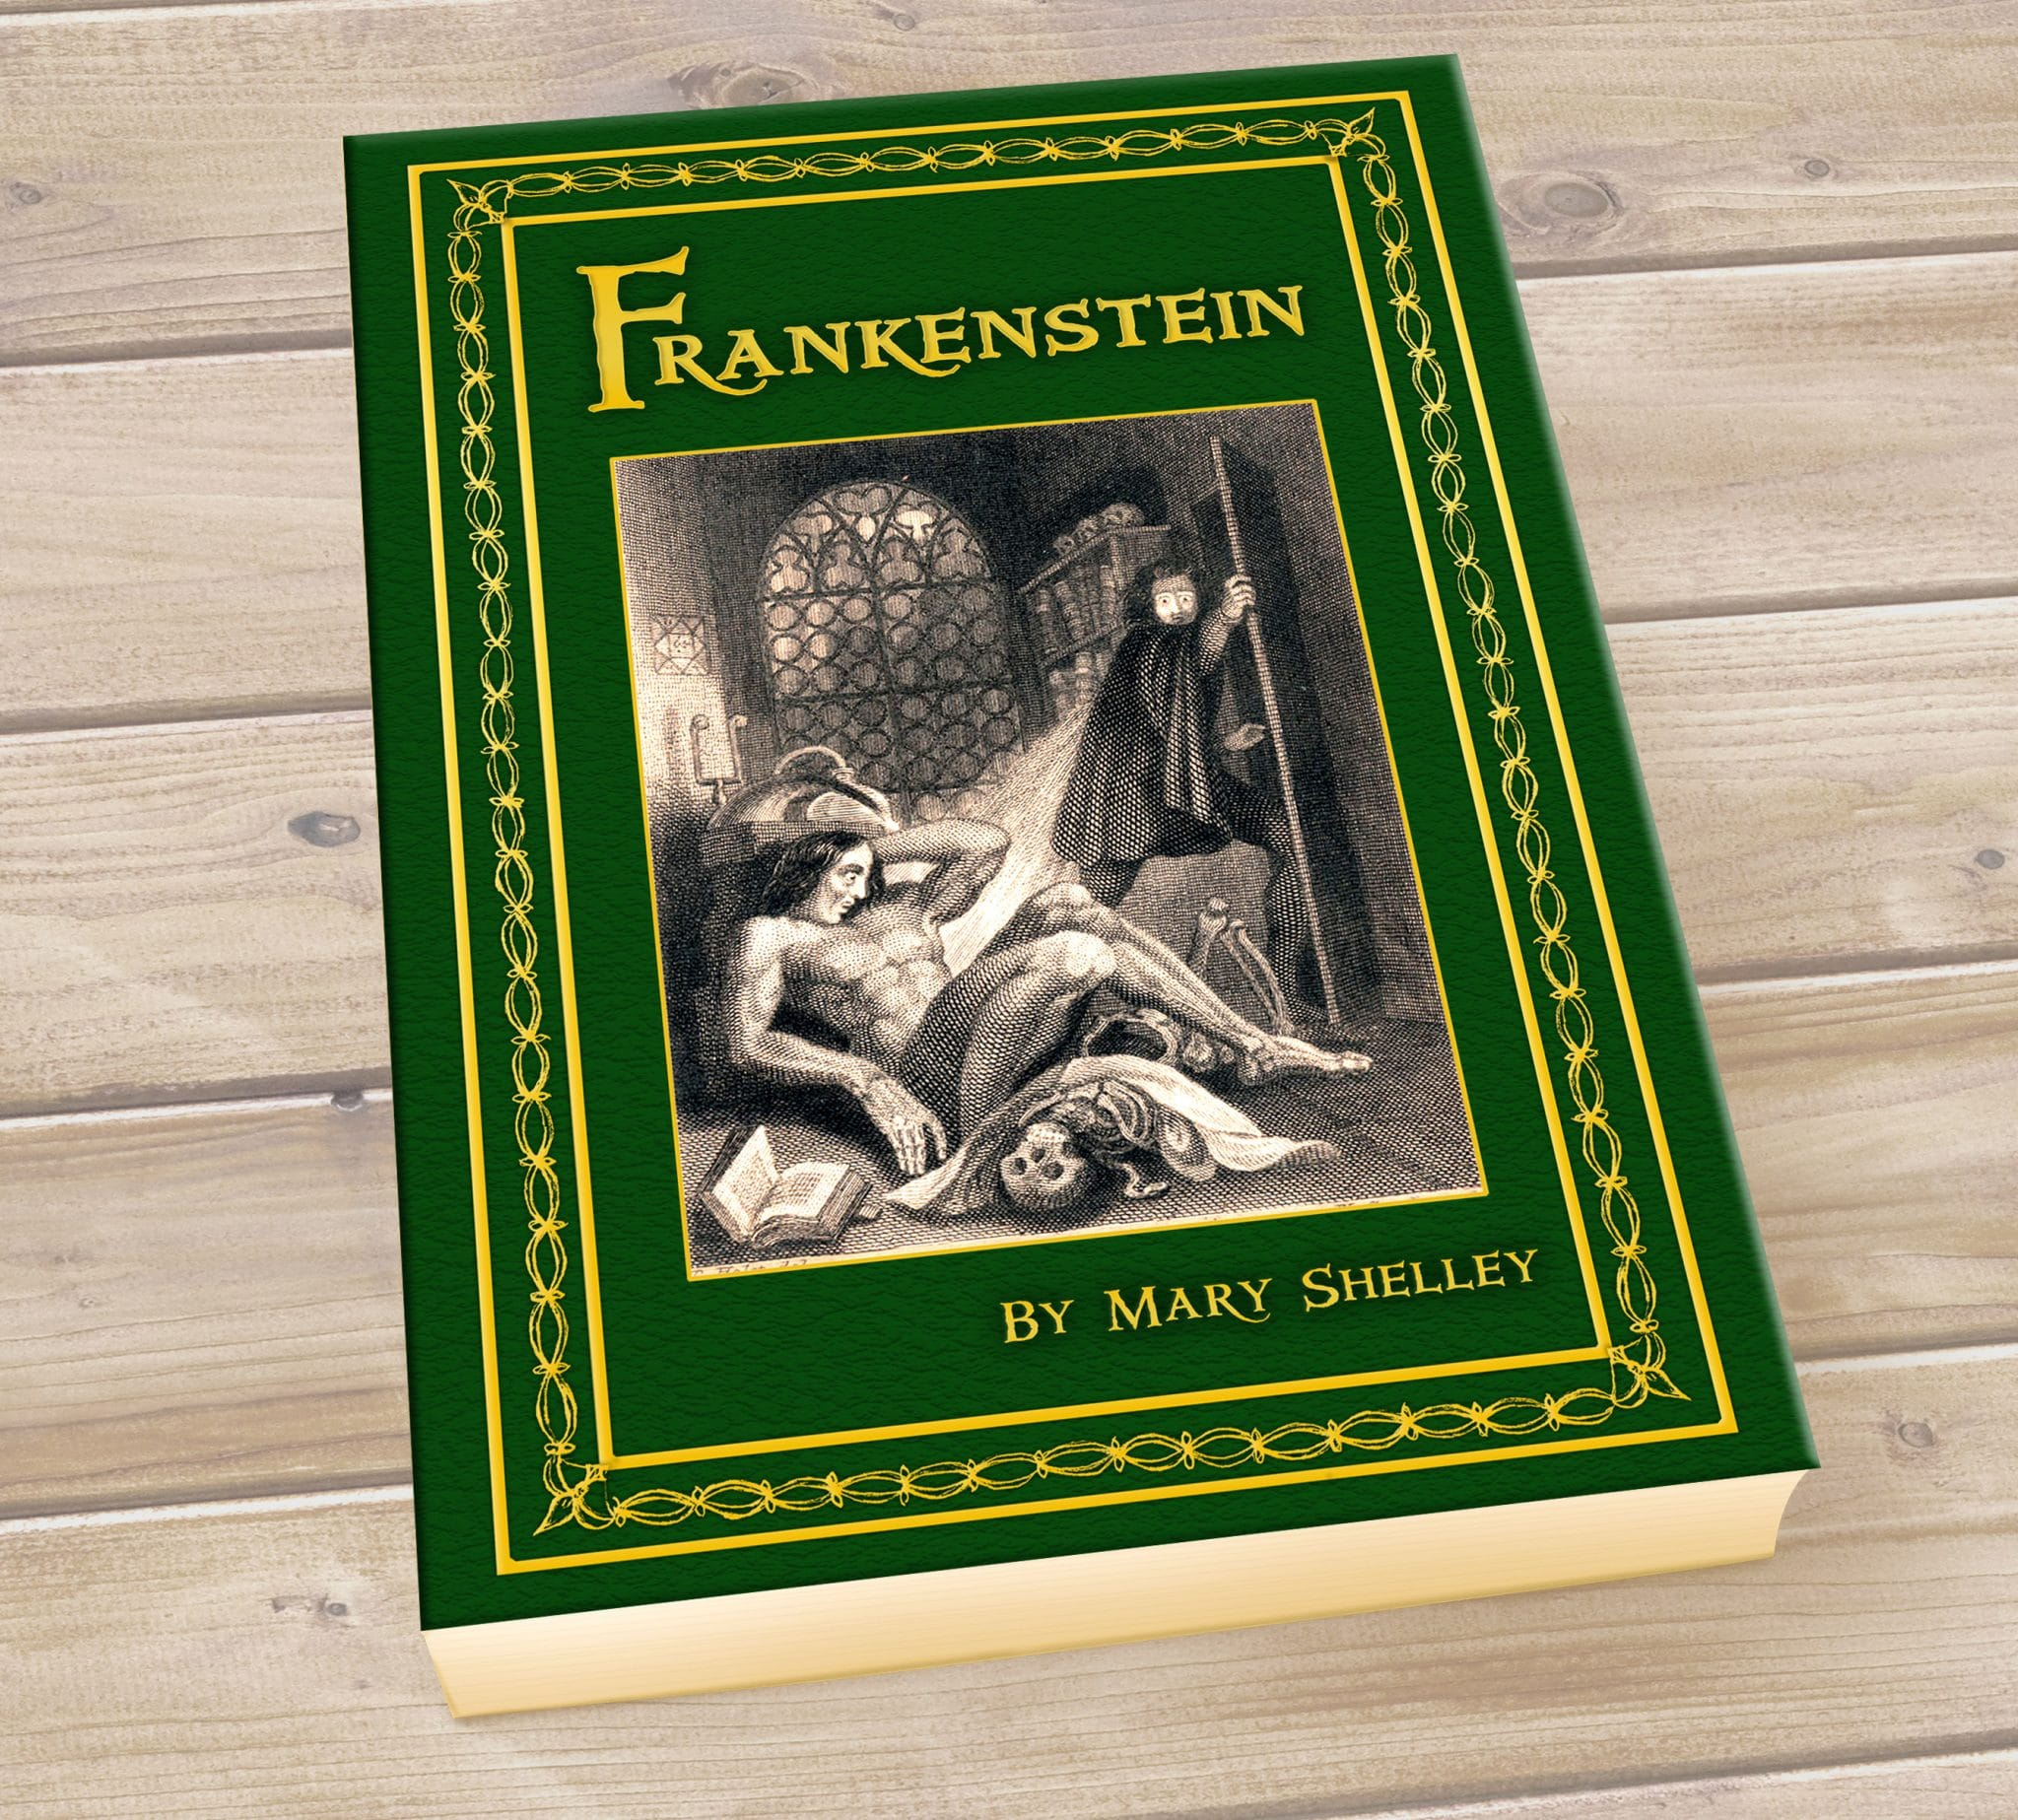 mary shelleys novel frankenstein and ridley scotts Frankenstein, by mary shelley, and blade runner, directed by ridley scott, share many common attributes, most notably, that time has demonstrated both texts' significance to society explore this statement.